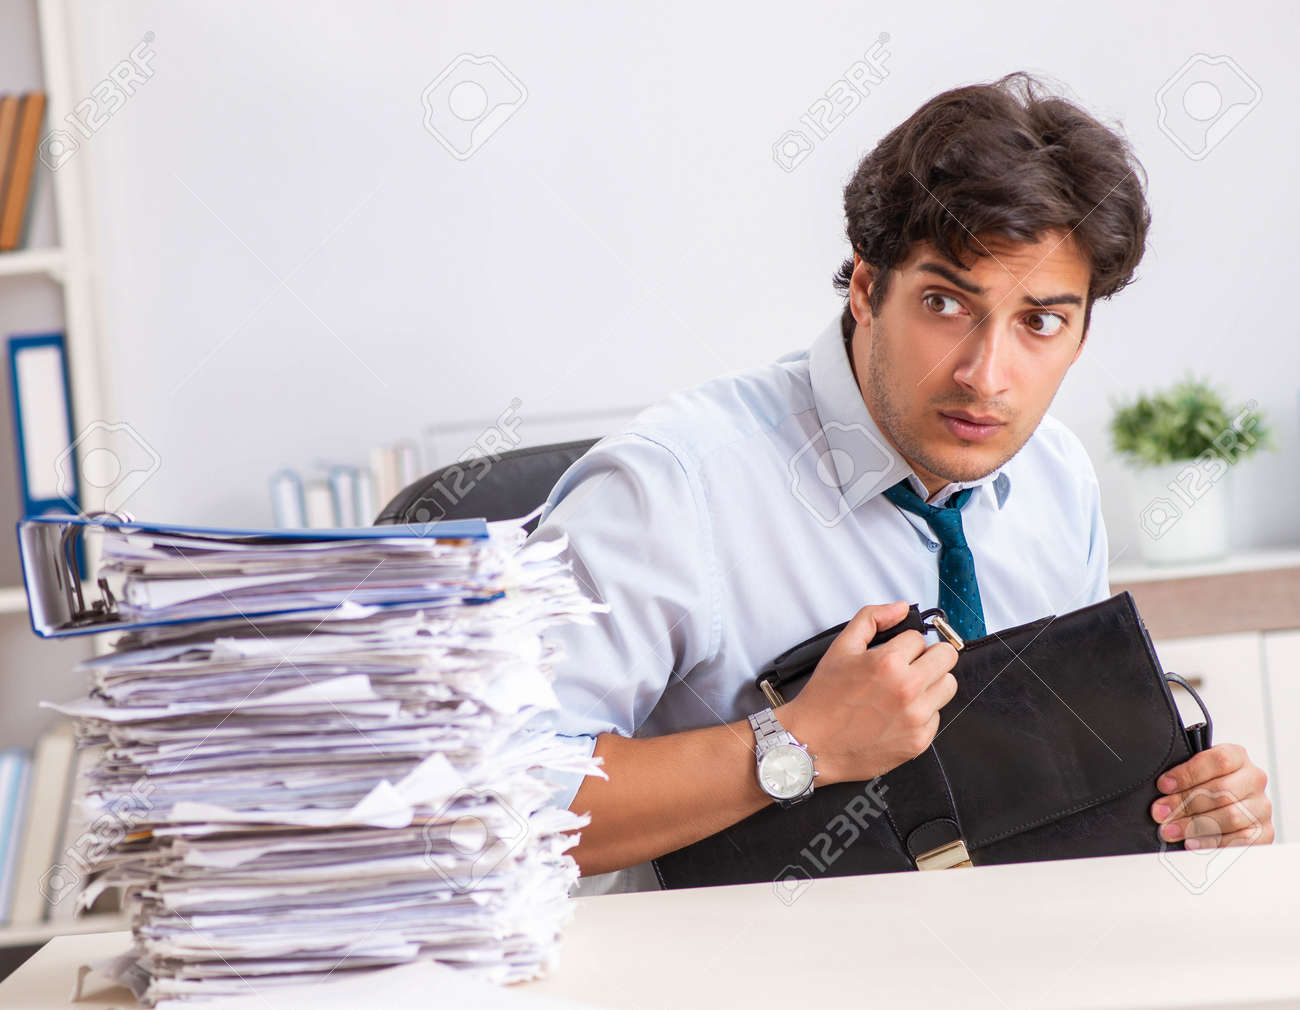 Overloaded busy employee with too much work and paperwork - 146487366